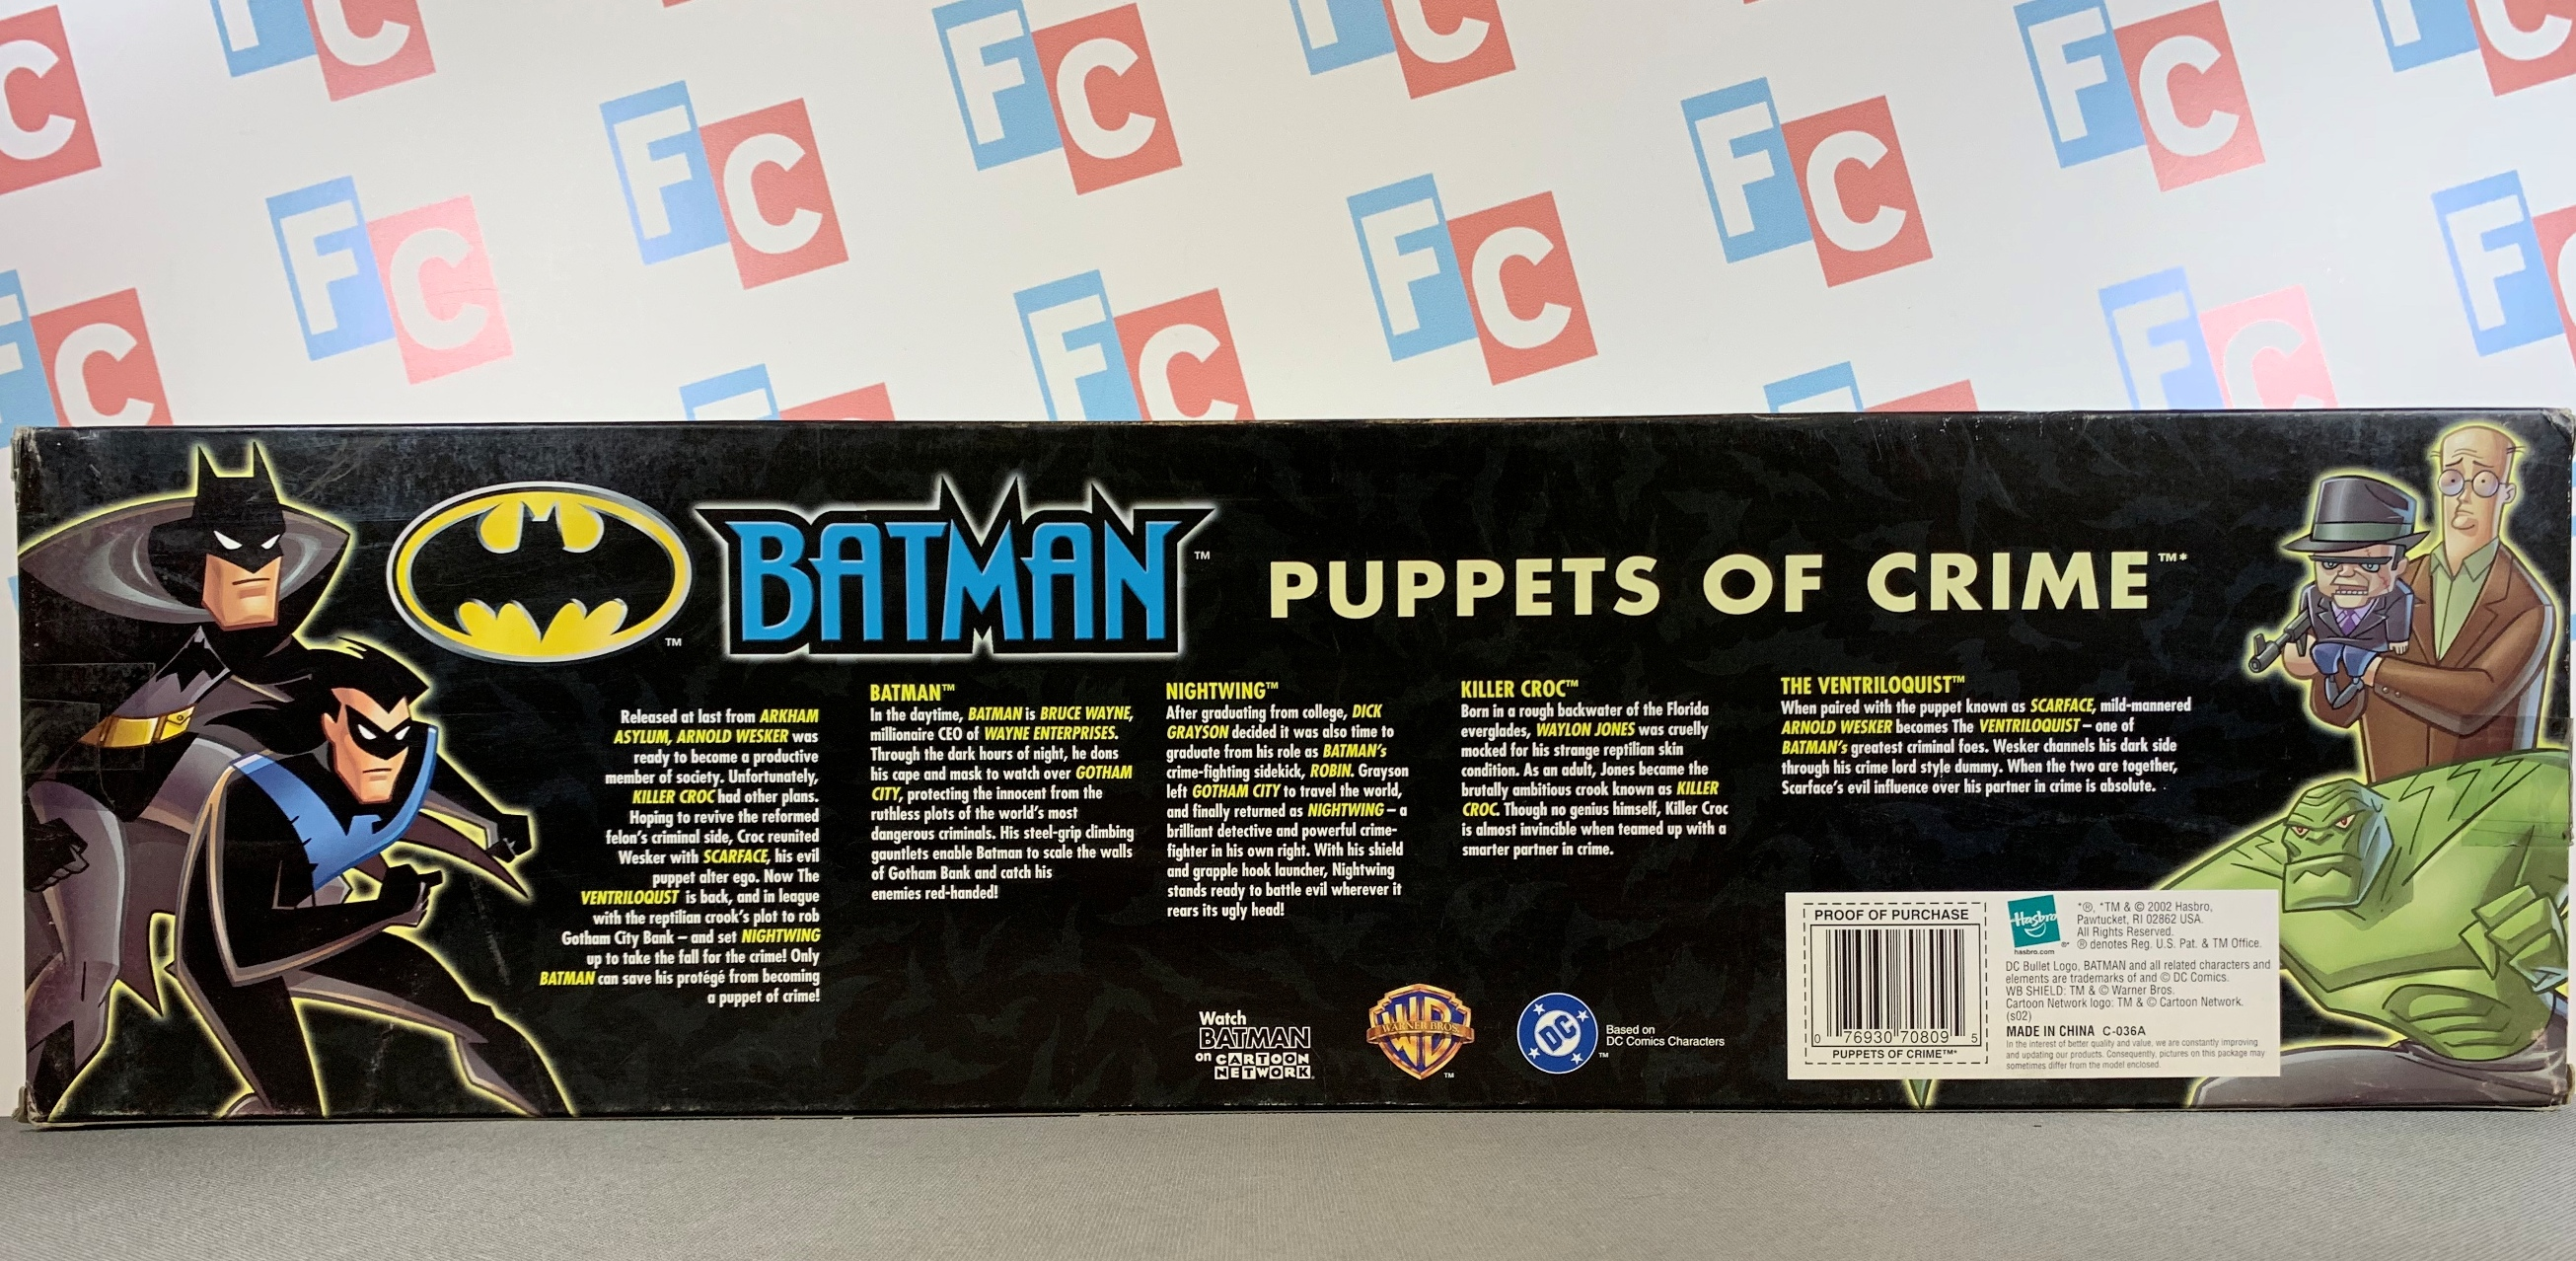 Puppets of Crime (Batman, Nightwing, Killer Croc, Ventriloquist with Scarface)